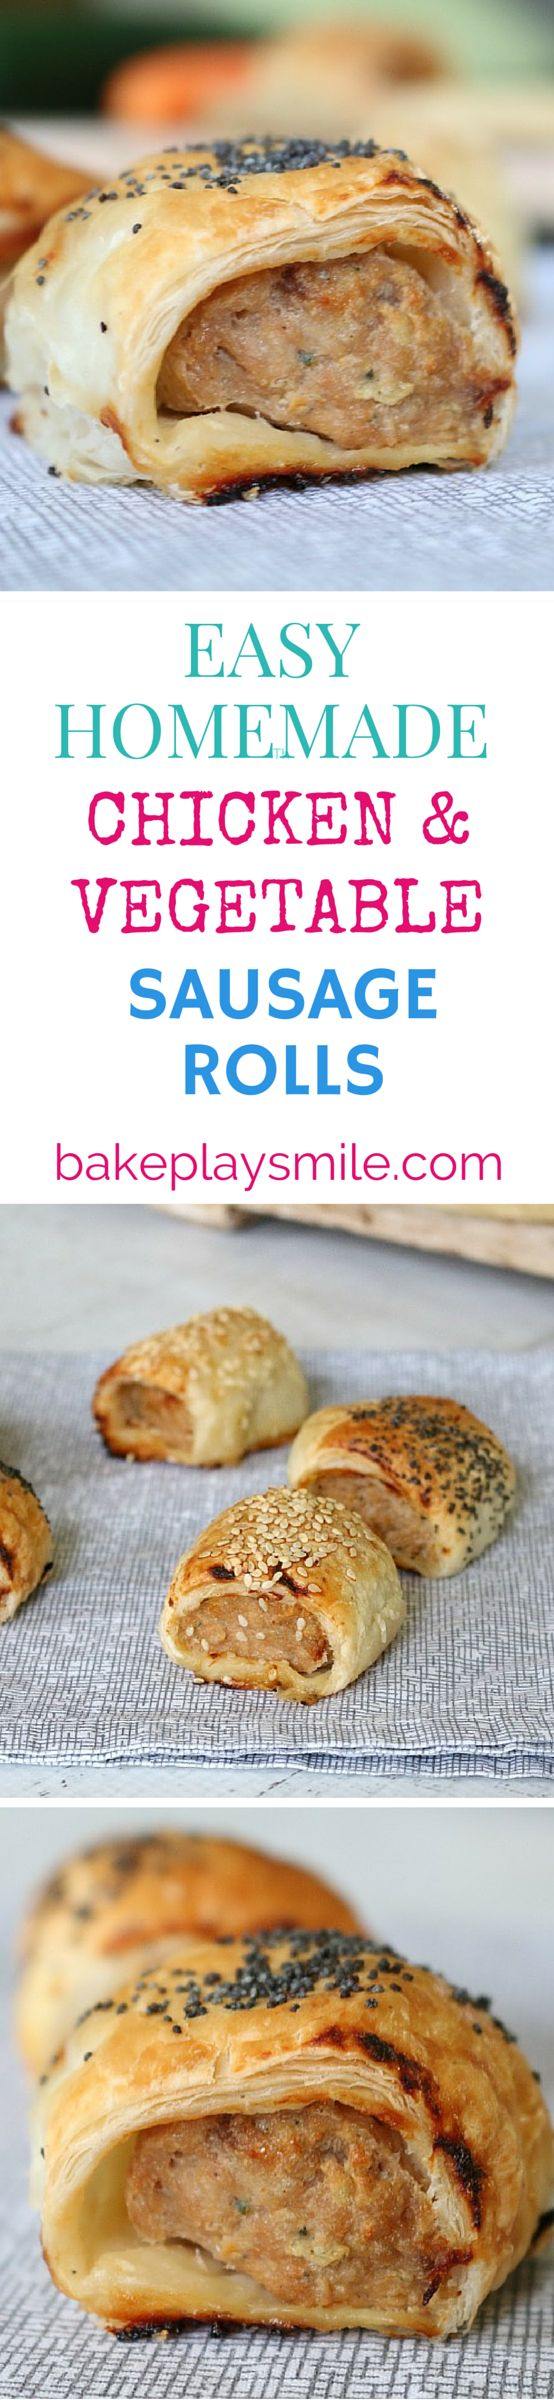 I love these Homemade Chicken and Vegetable Sausage Rolls - they're so good for lunch boxes (and you can hide any vegetables in there that you like!). #sausagerolls #chicken #vegetable #thermomix